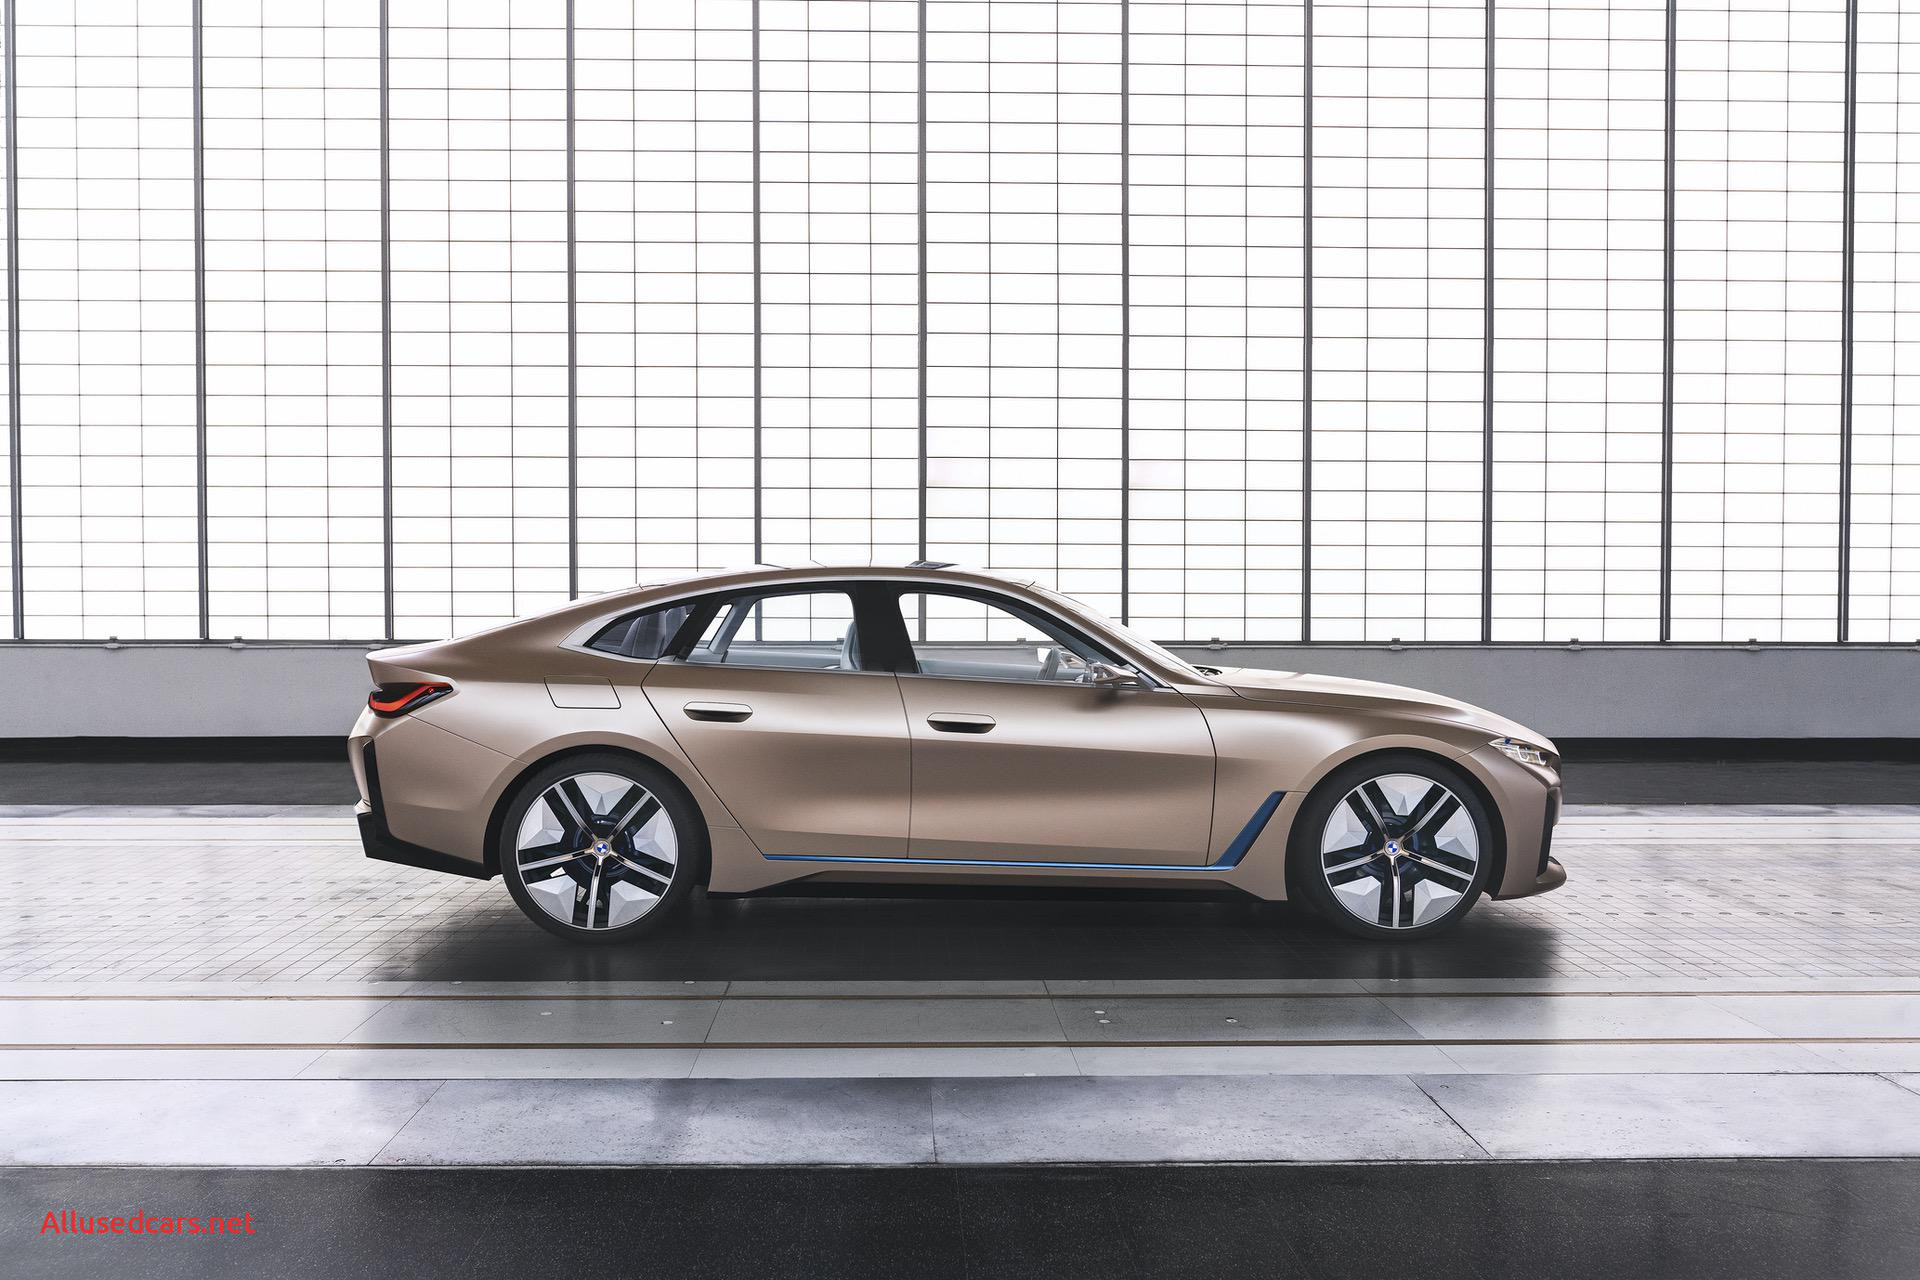 Tesla Delivery Center Fresh Bmw I4 Will Be Most Powerful 4 Series and It Should Be